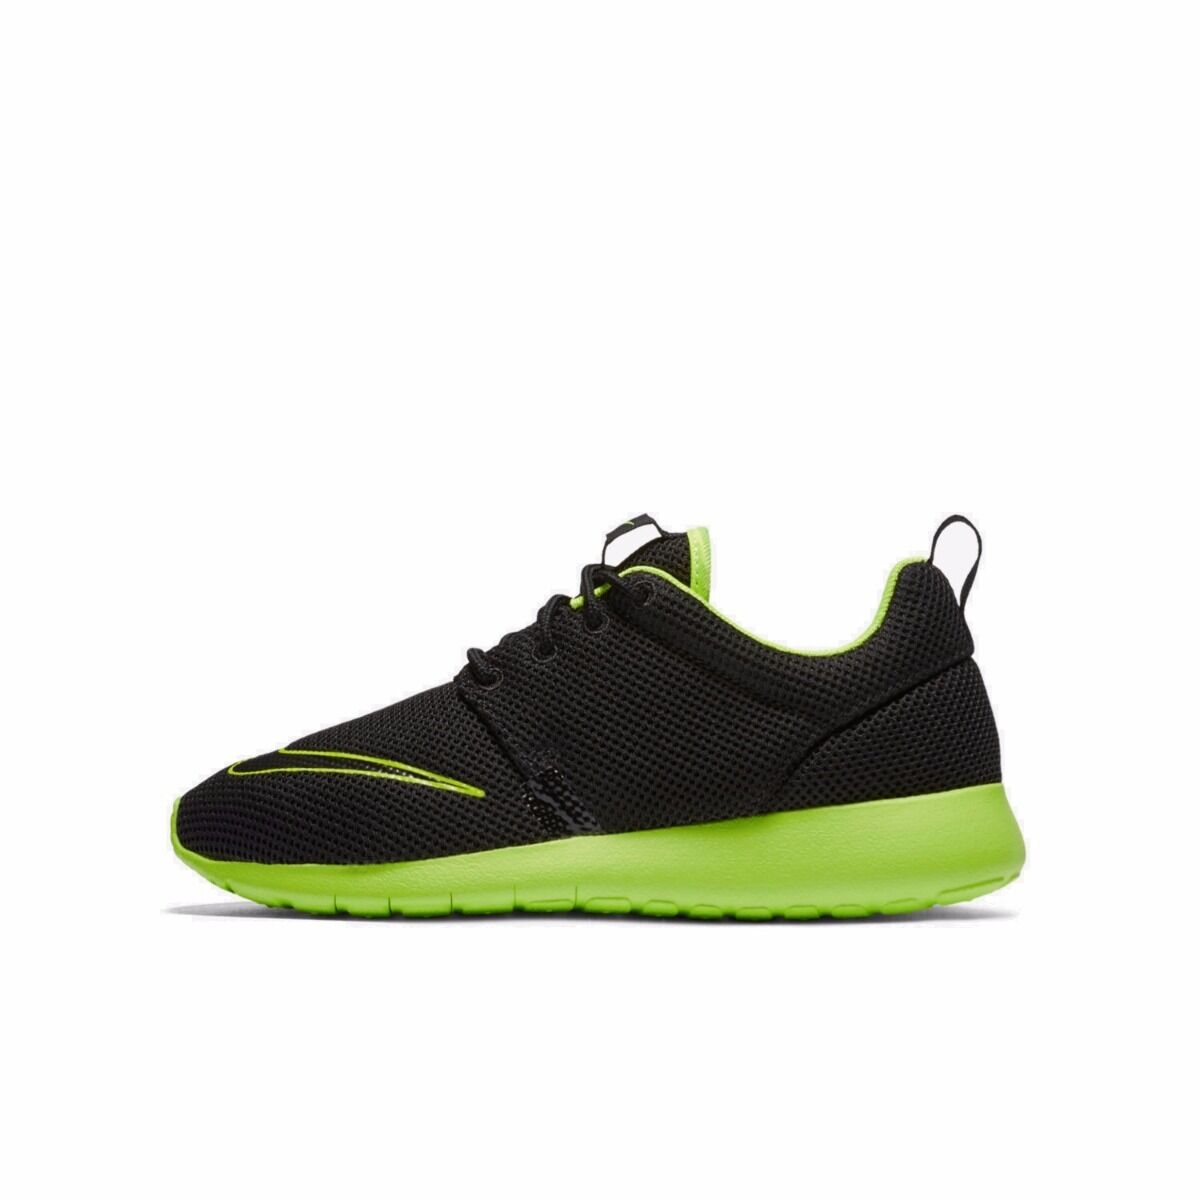 nike roshe run size 3 uk to us size